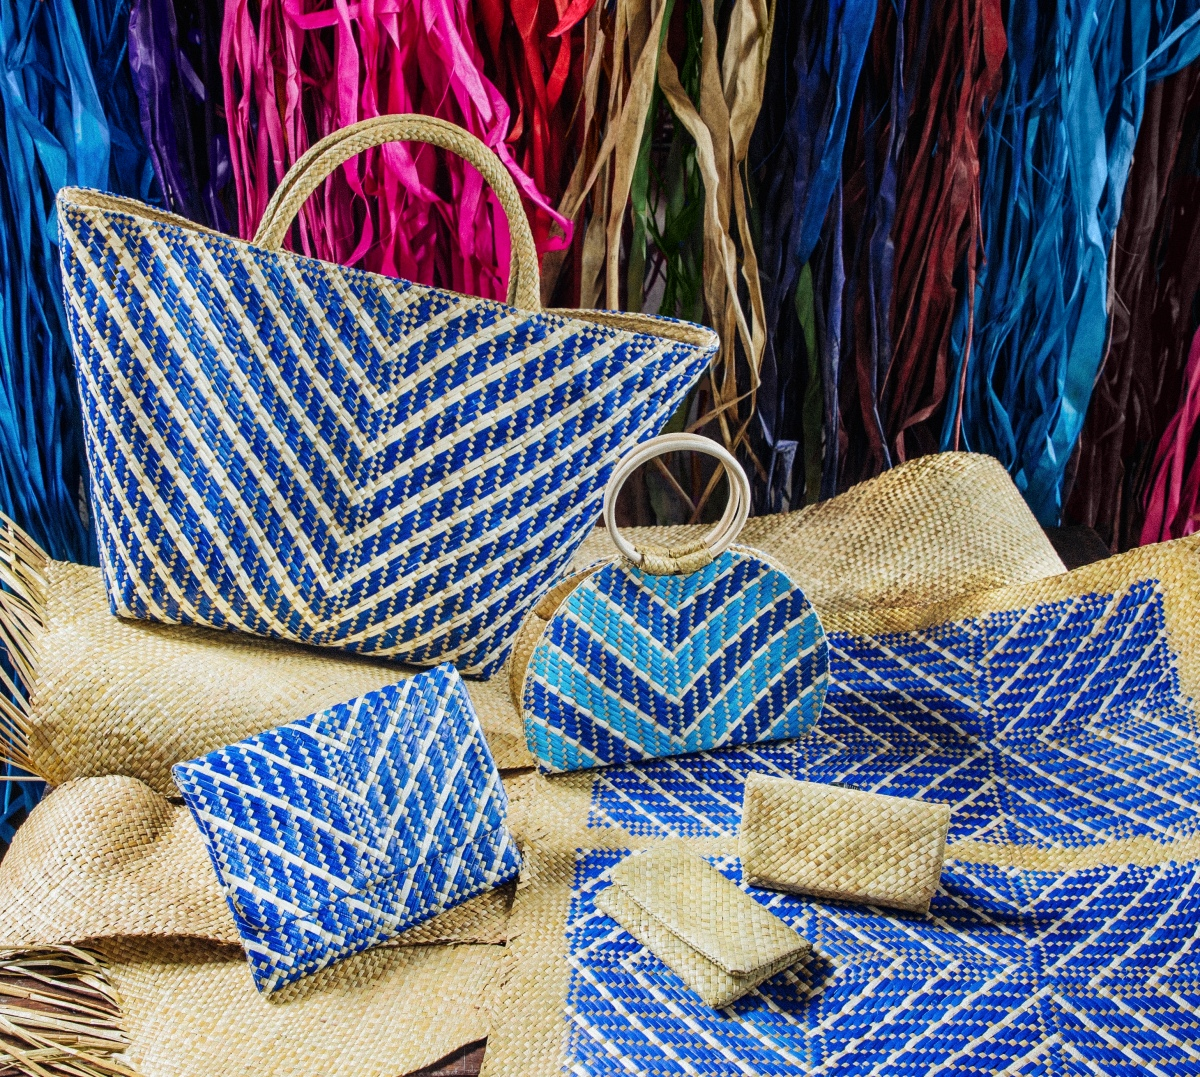 Charles & Keith partners with local brand Woven to benefit local women weavers